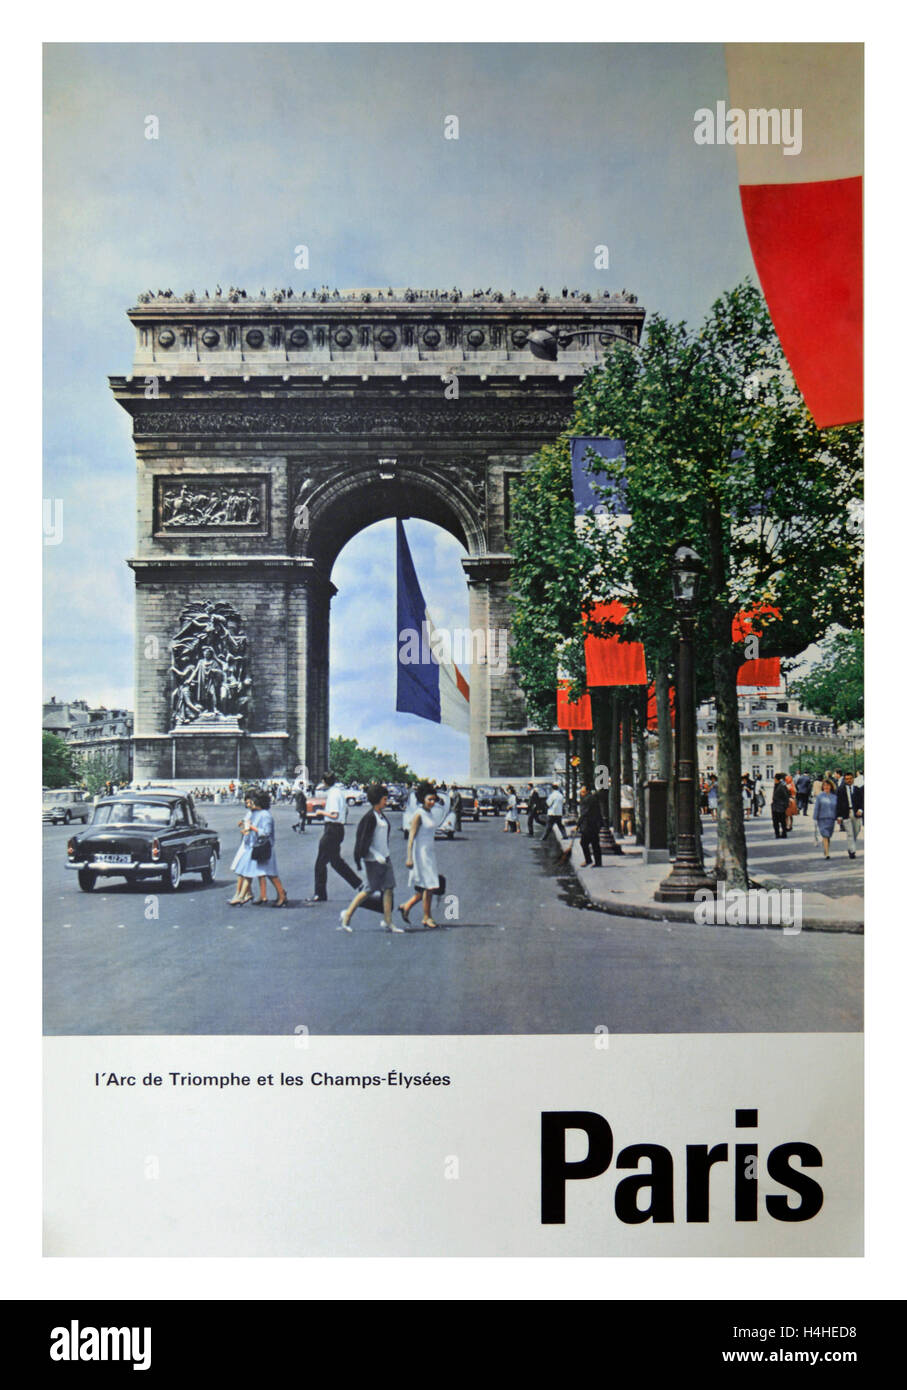 Vintage retro travel poster of Paris featuring Arc de Triomphe and Champs Elysee  France - Stock Image